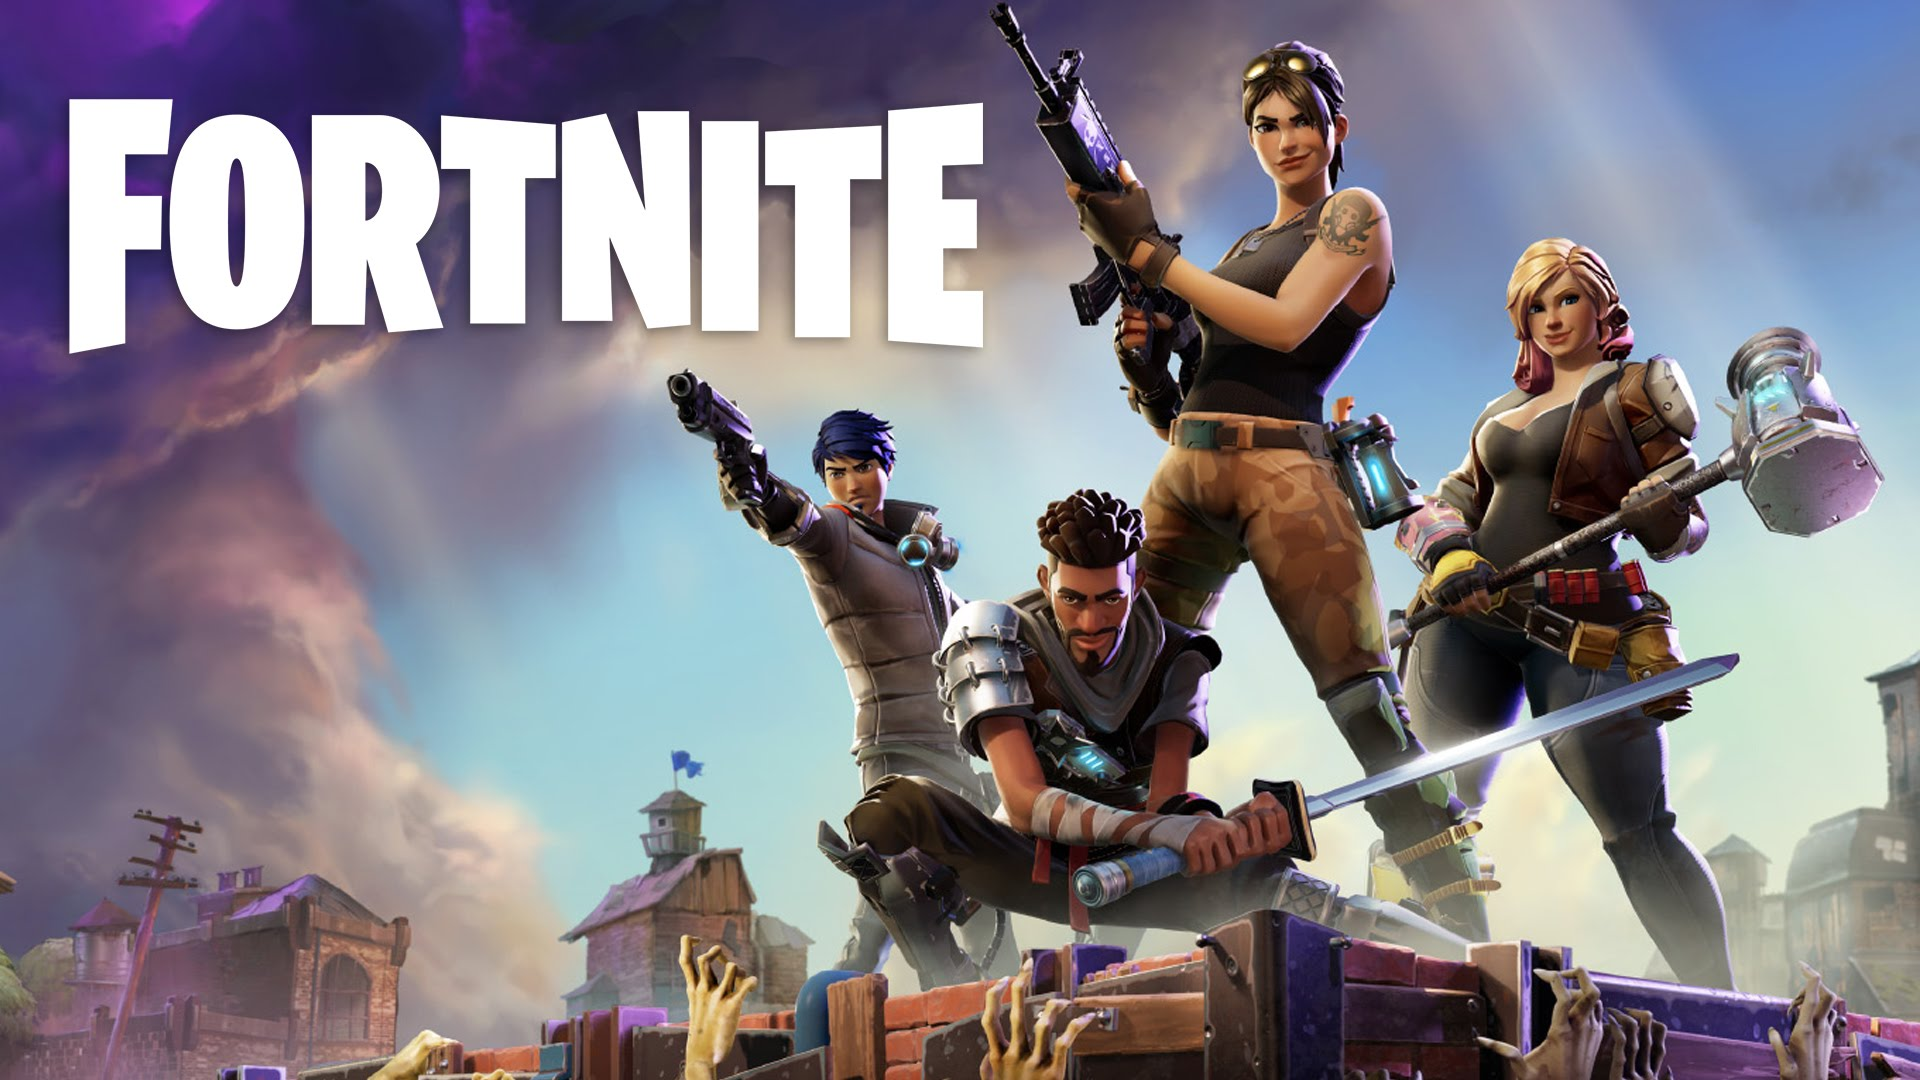 Fortnite gaming